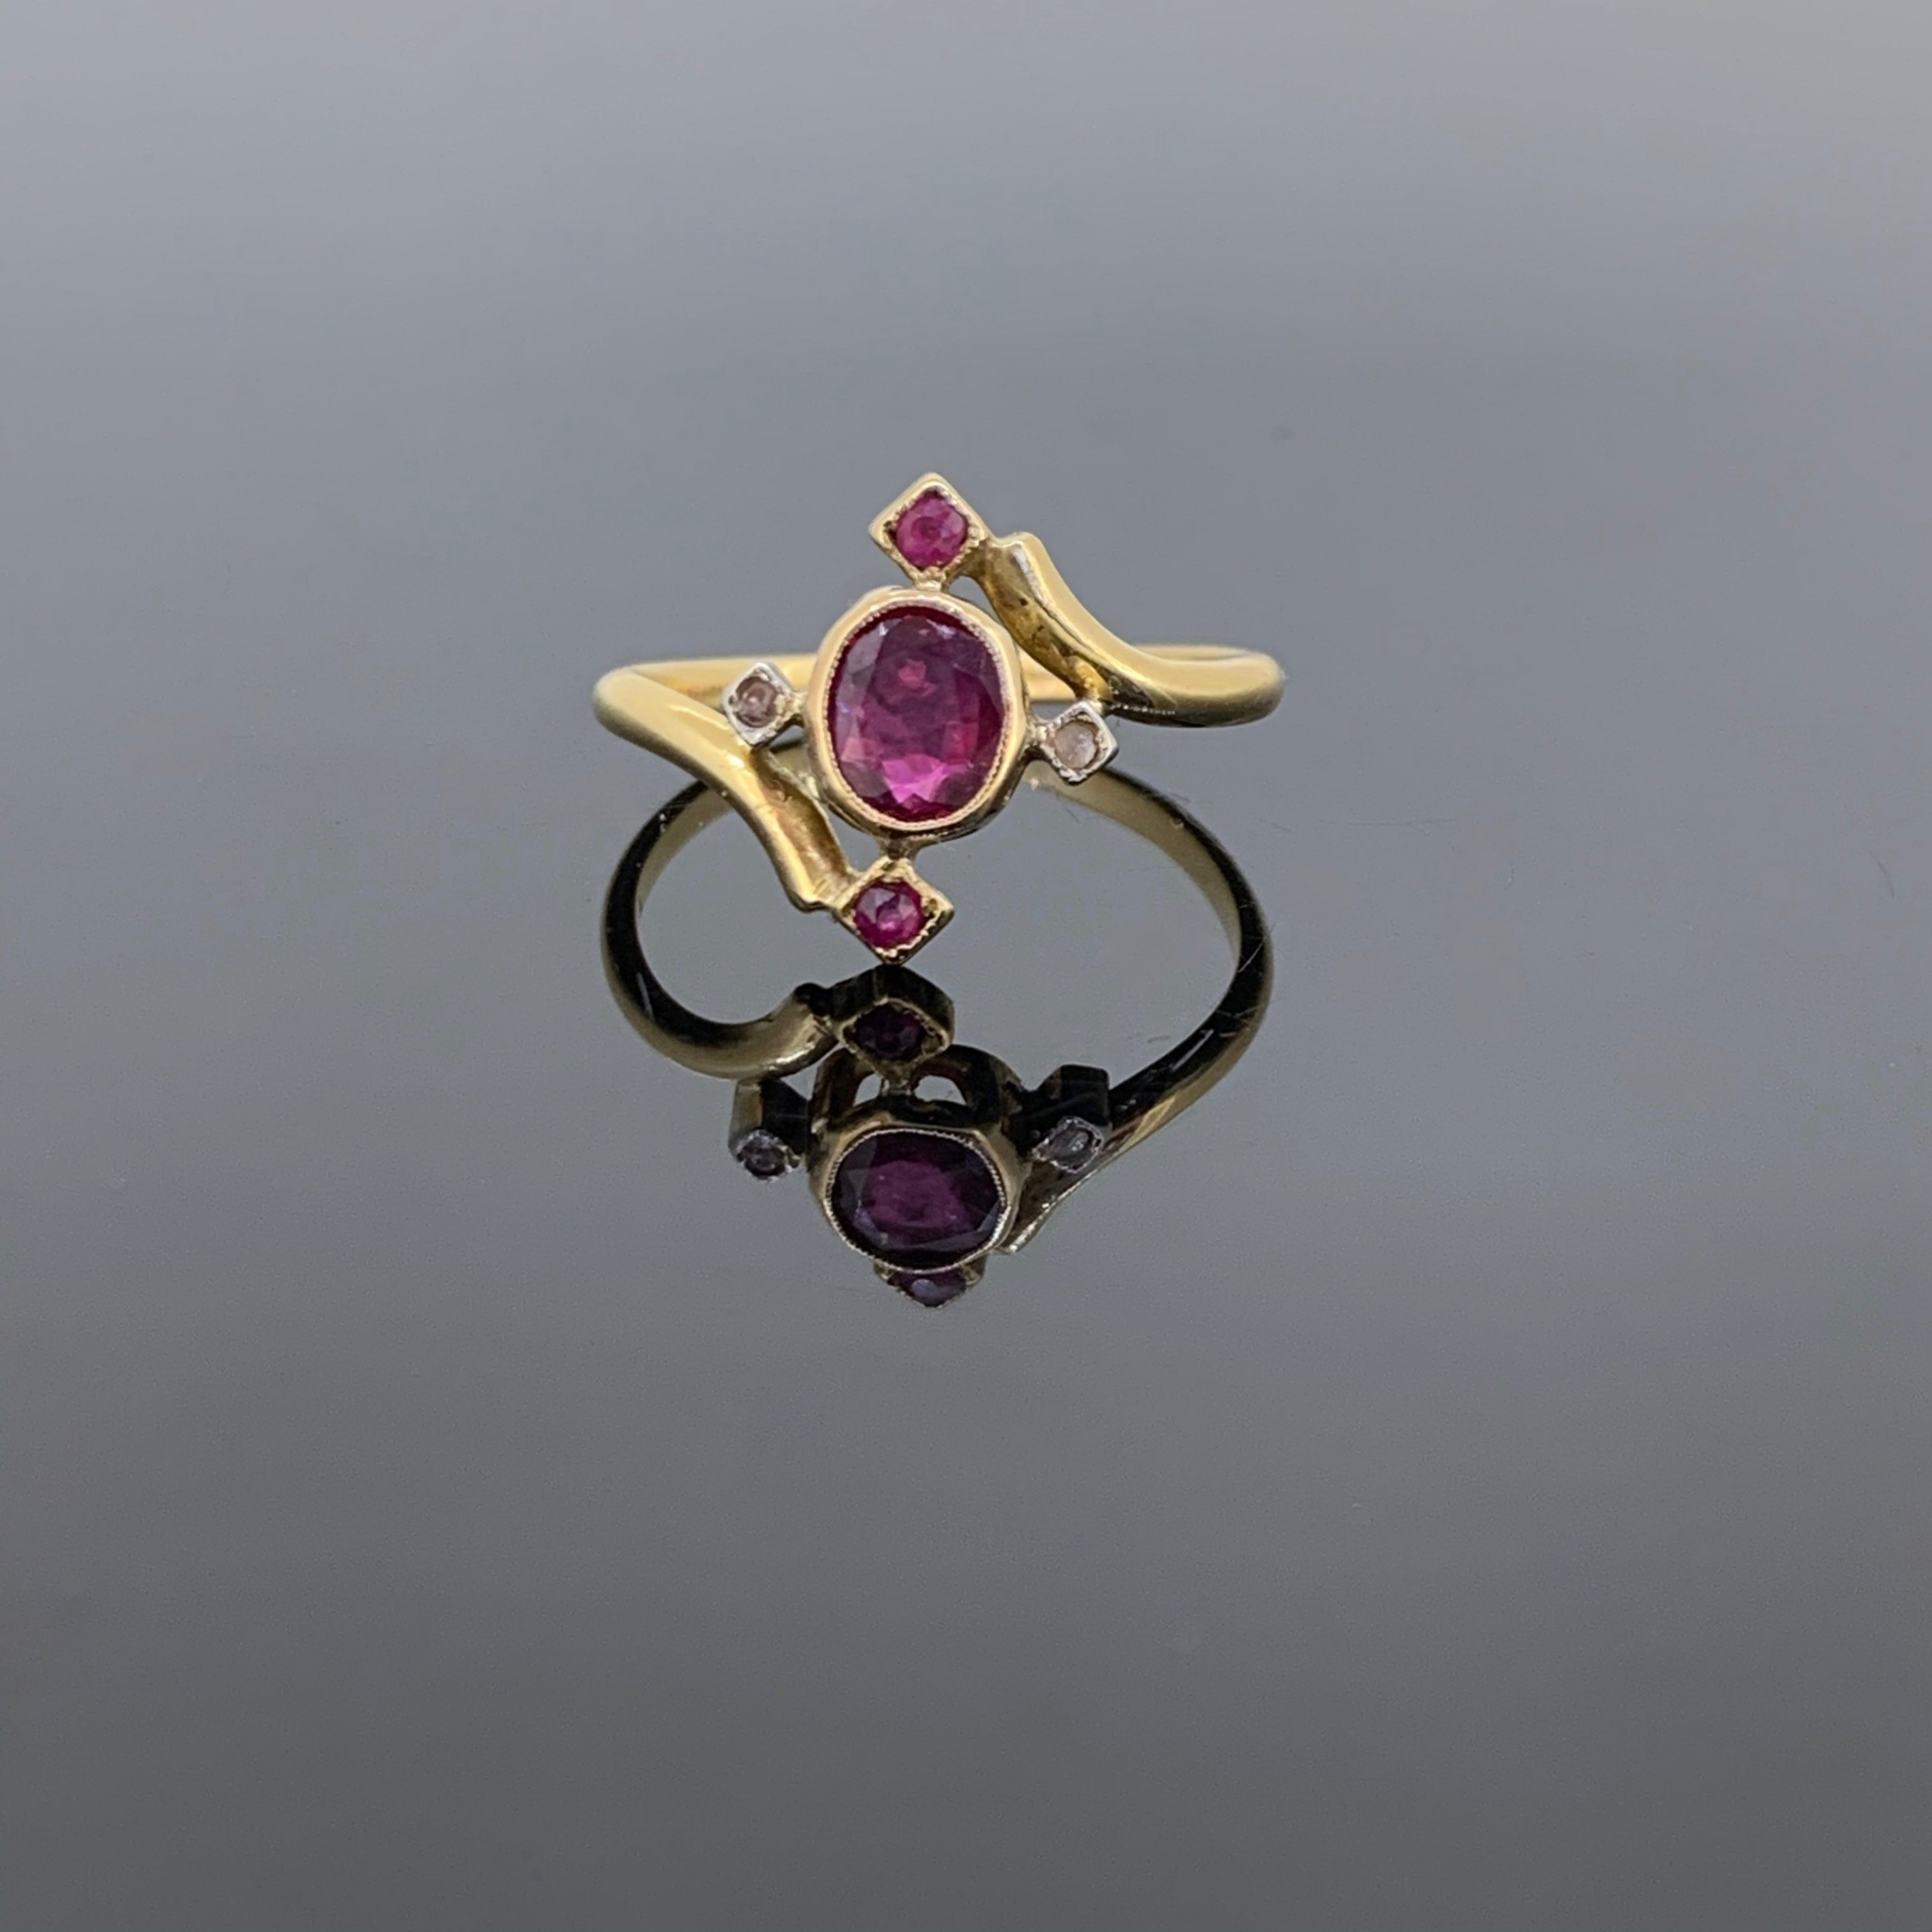 antique art nouveau ruby and rose cut diamonds ring 18kt gold and platinum france circa 1910